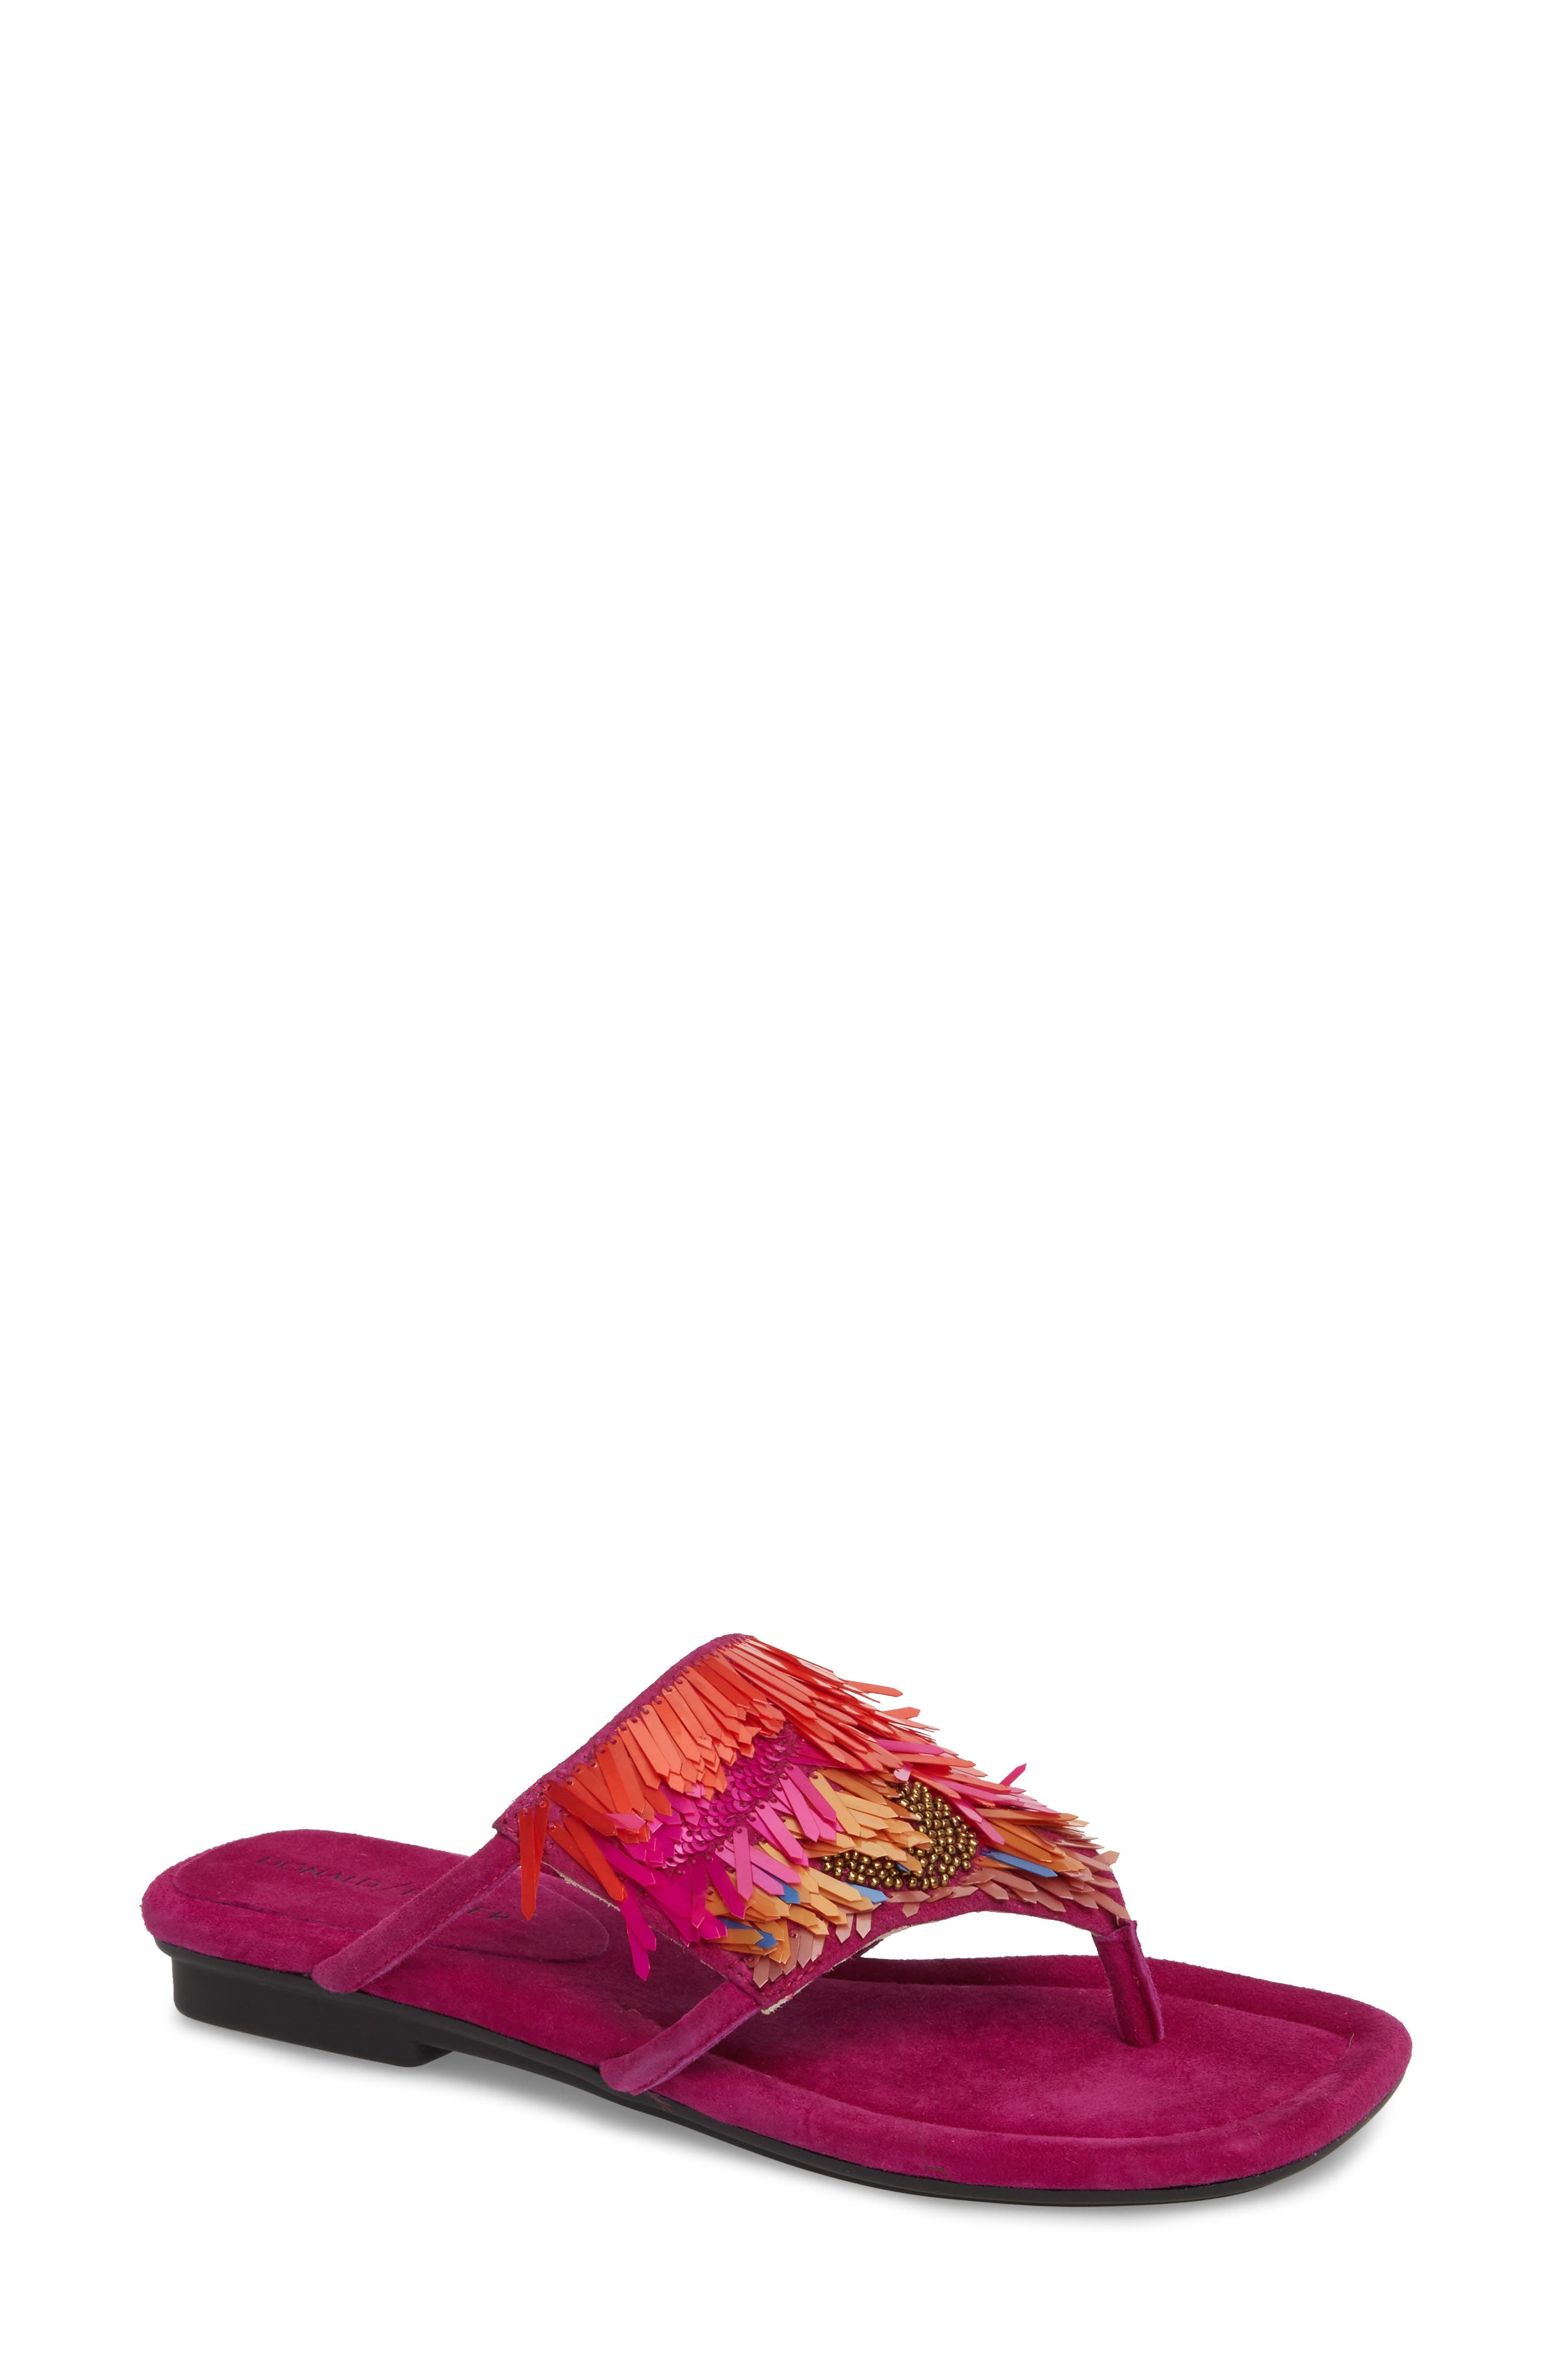 Kya Feather Sequin Sandal,                             Main thumbnail 1, color,                             Magenta Leather